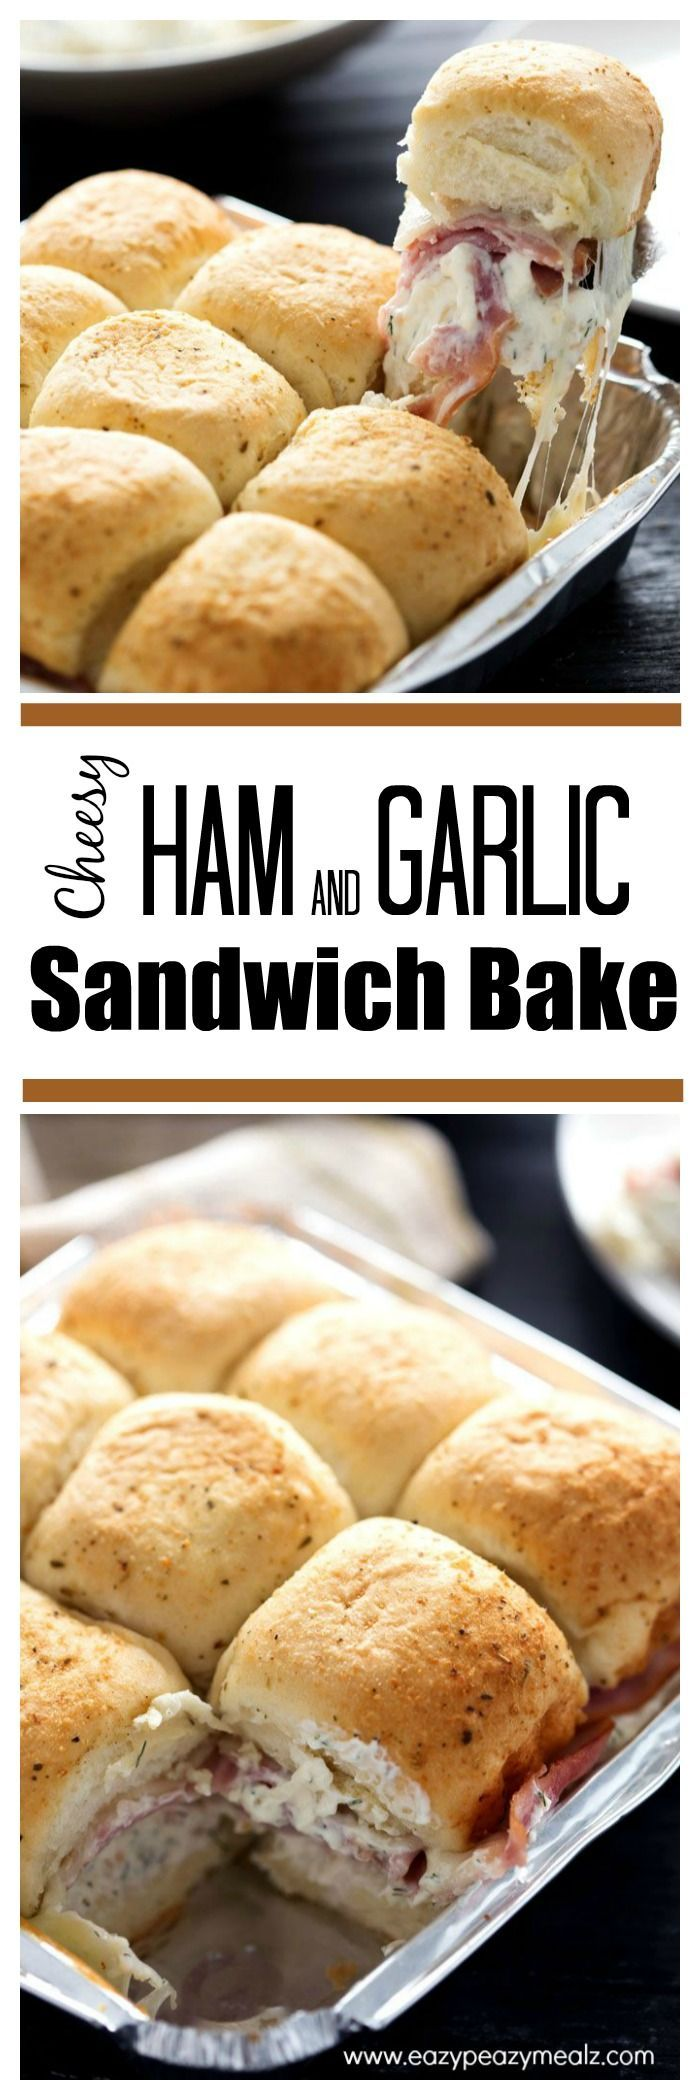 Cheesy Ham and Garlic Sandwich Bake, the perfect weeknight meal. Comes together in minutes. The whole family will love these insane flavors, and you'll love how quick and easy it is to make and clean up!